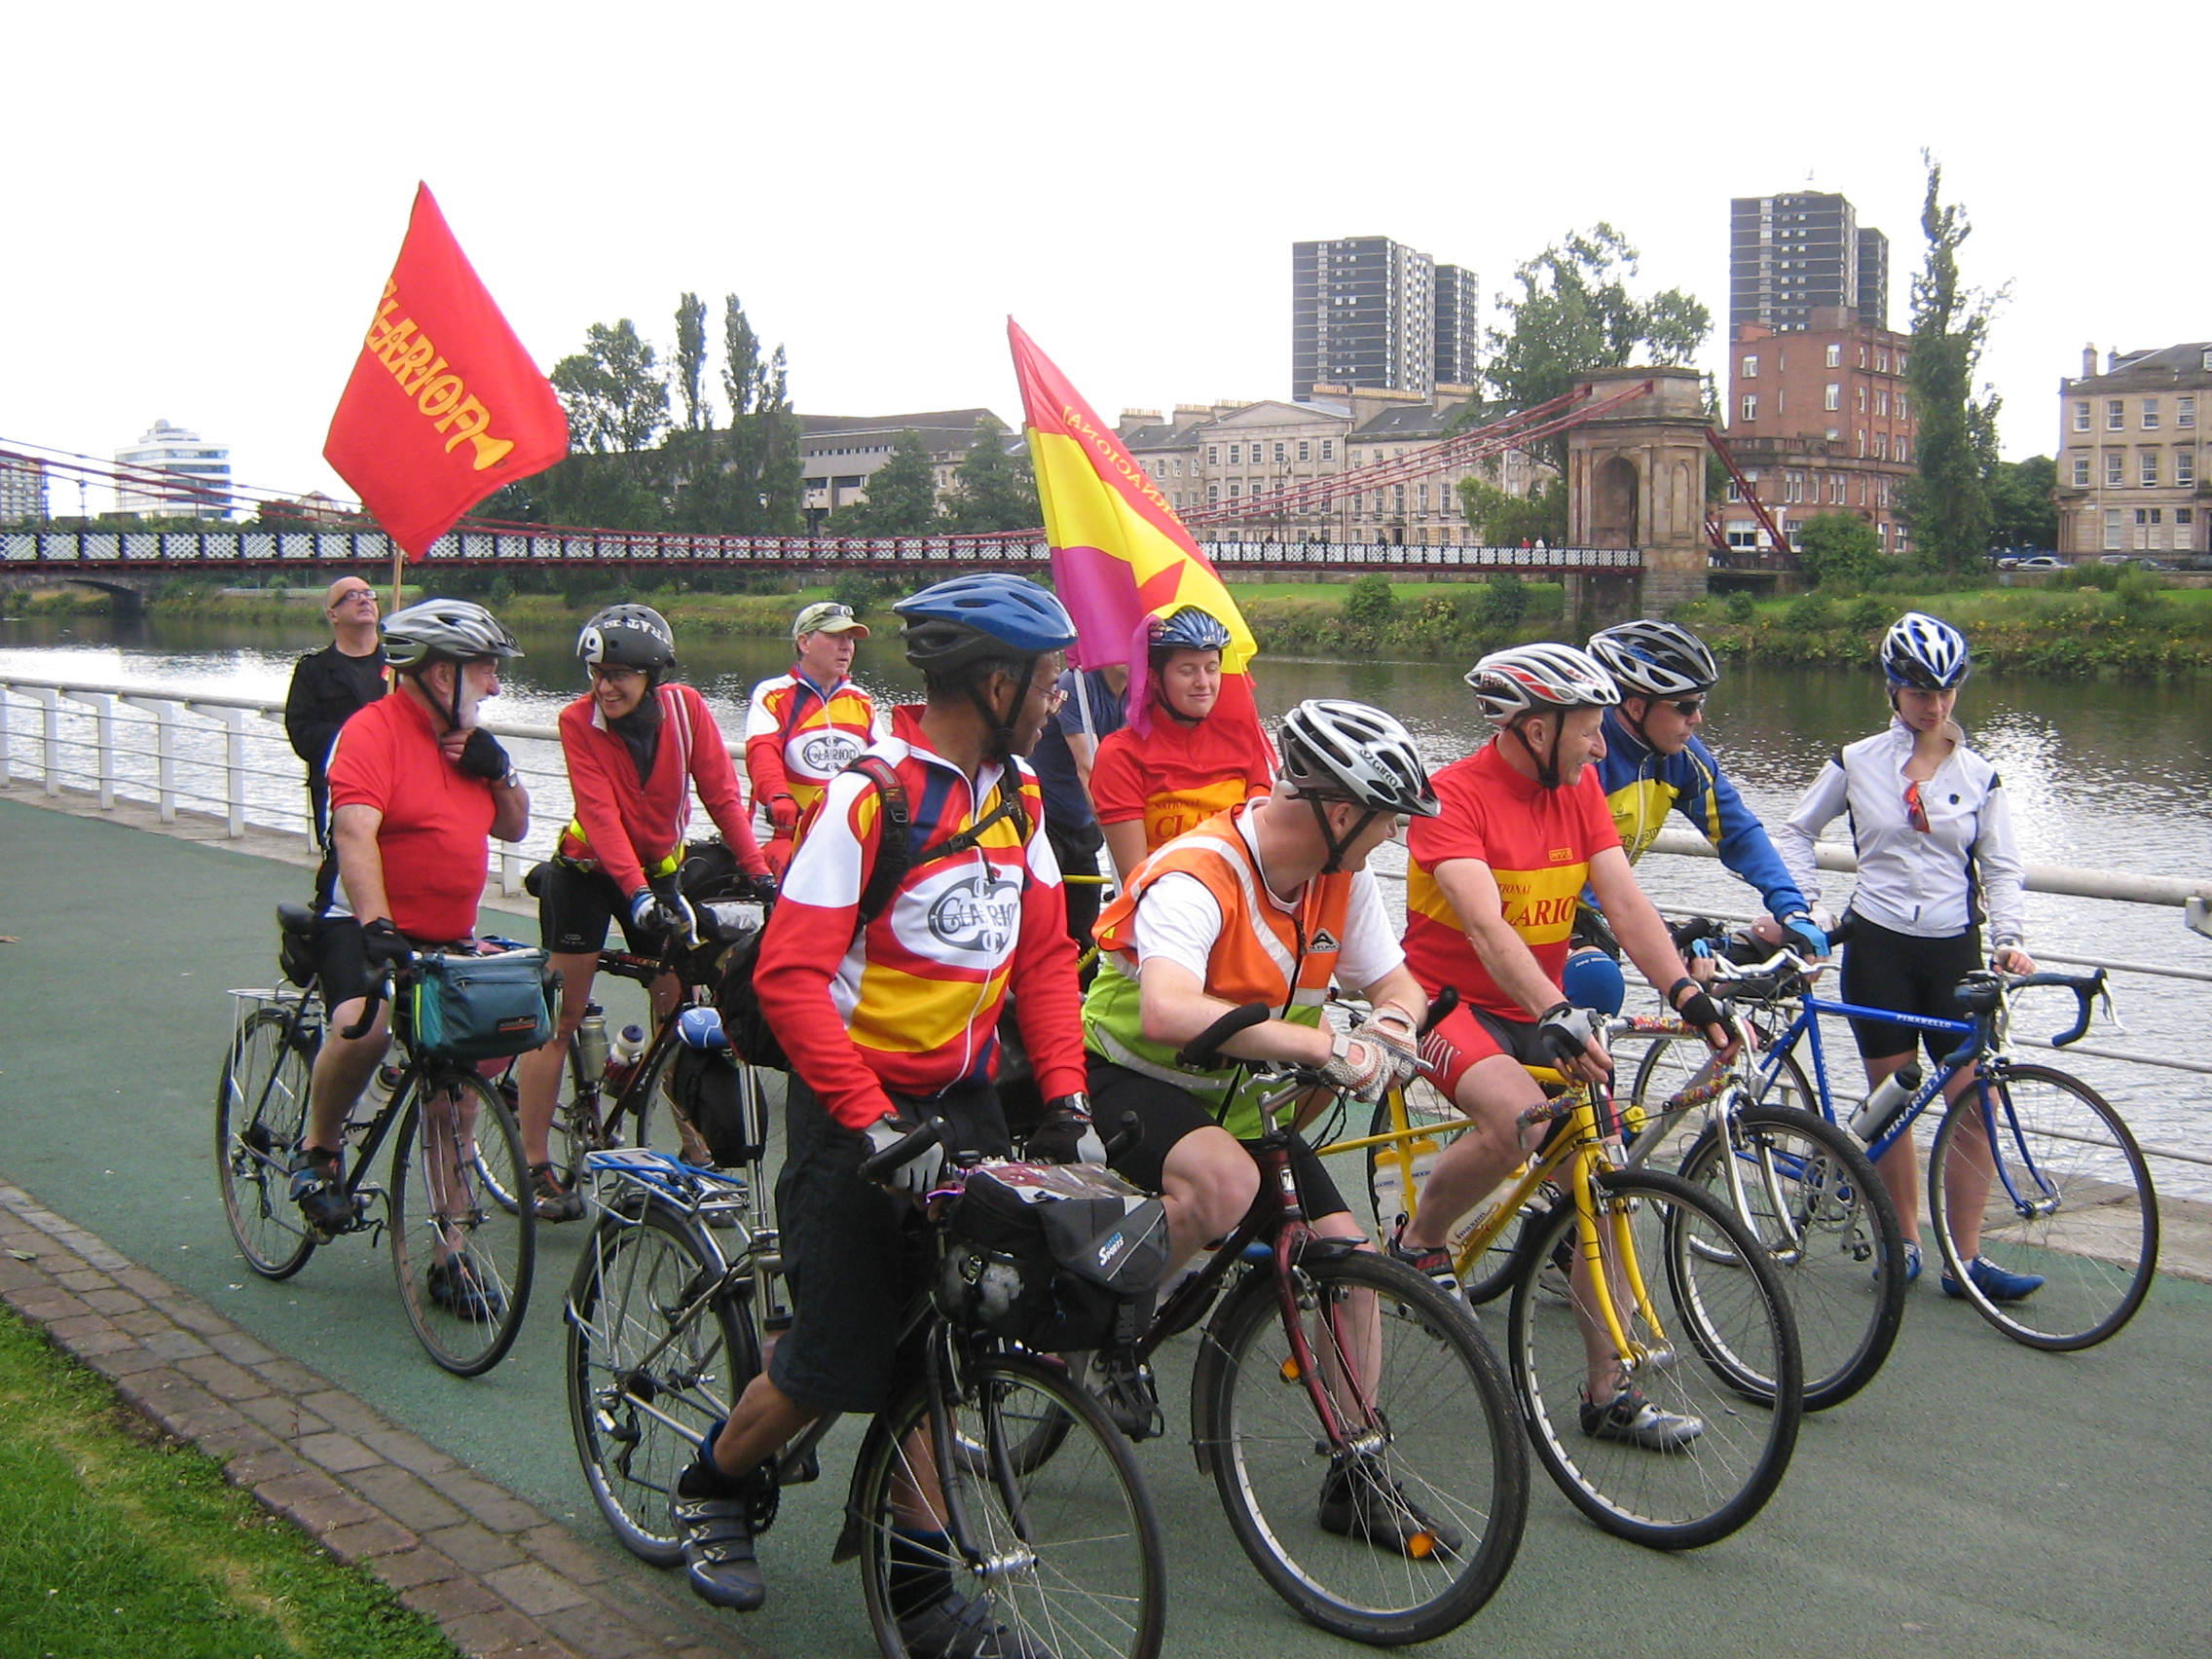 Cyclists leaving Glasgow with Jimmy Friel, President of the Scottish Printworker's Union holding the Clarion flag at the back.